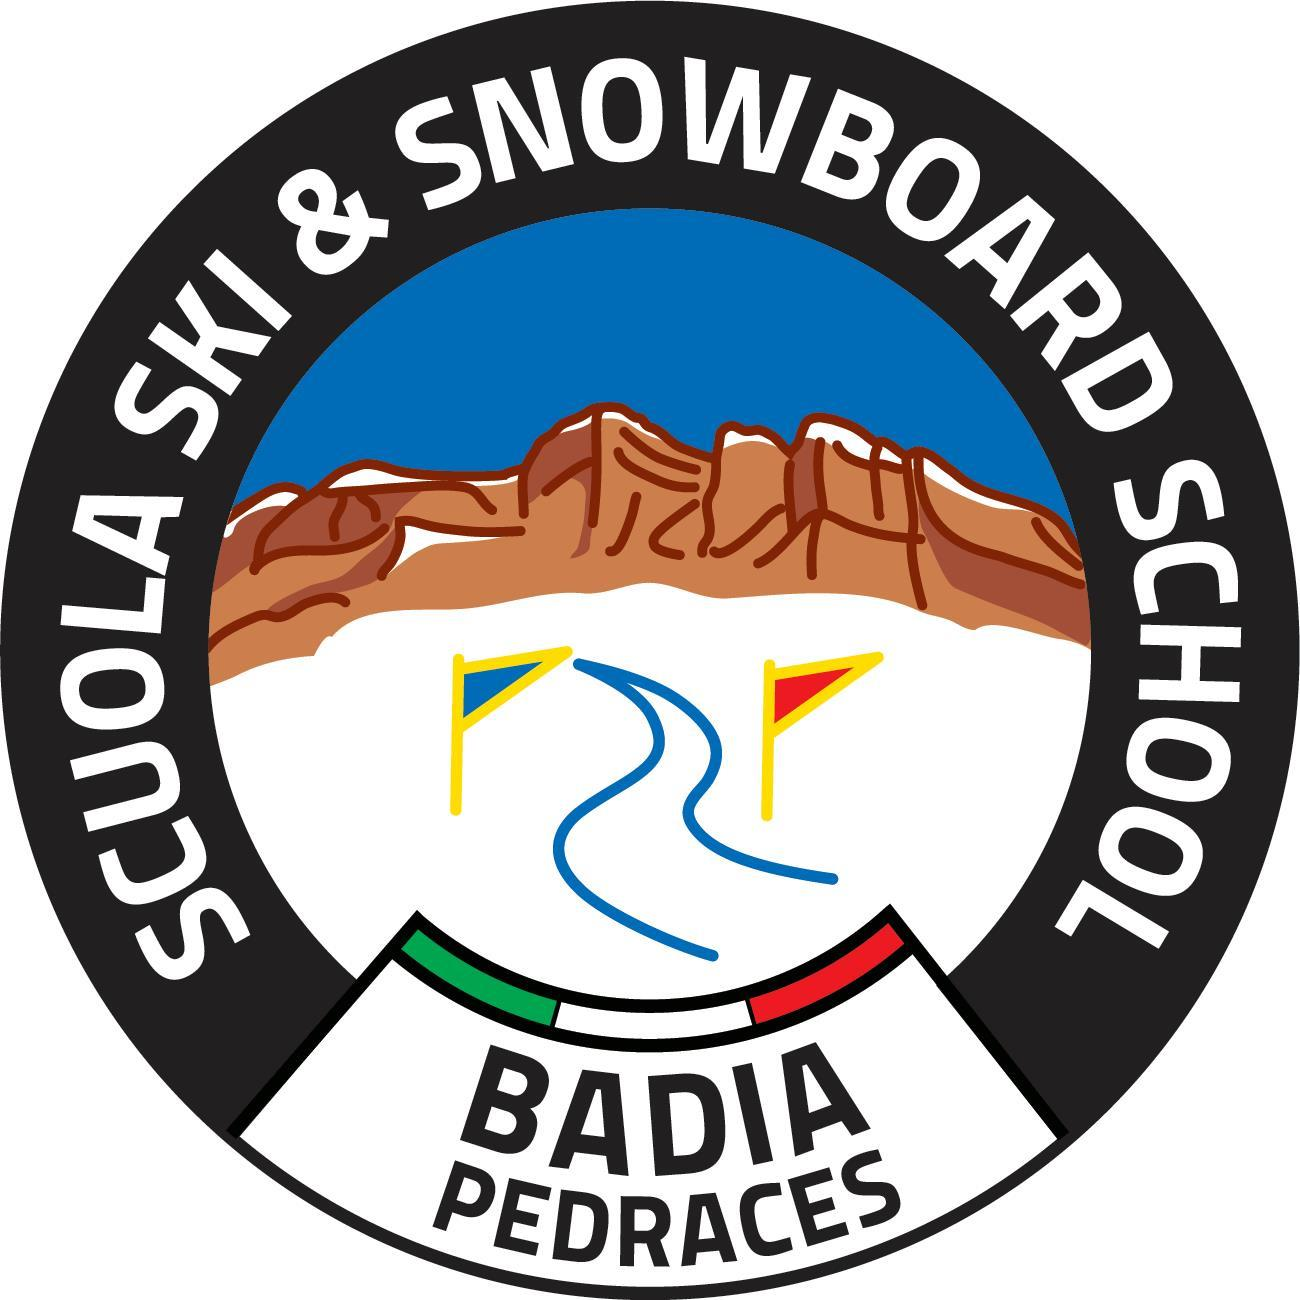 Ski and snowboard school Badia Pedraces